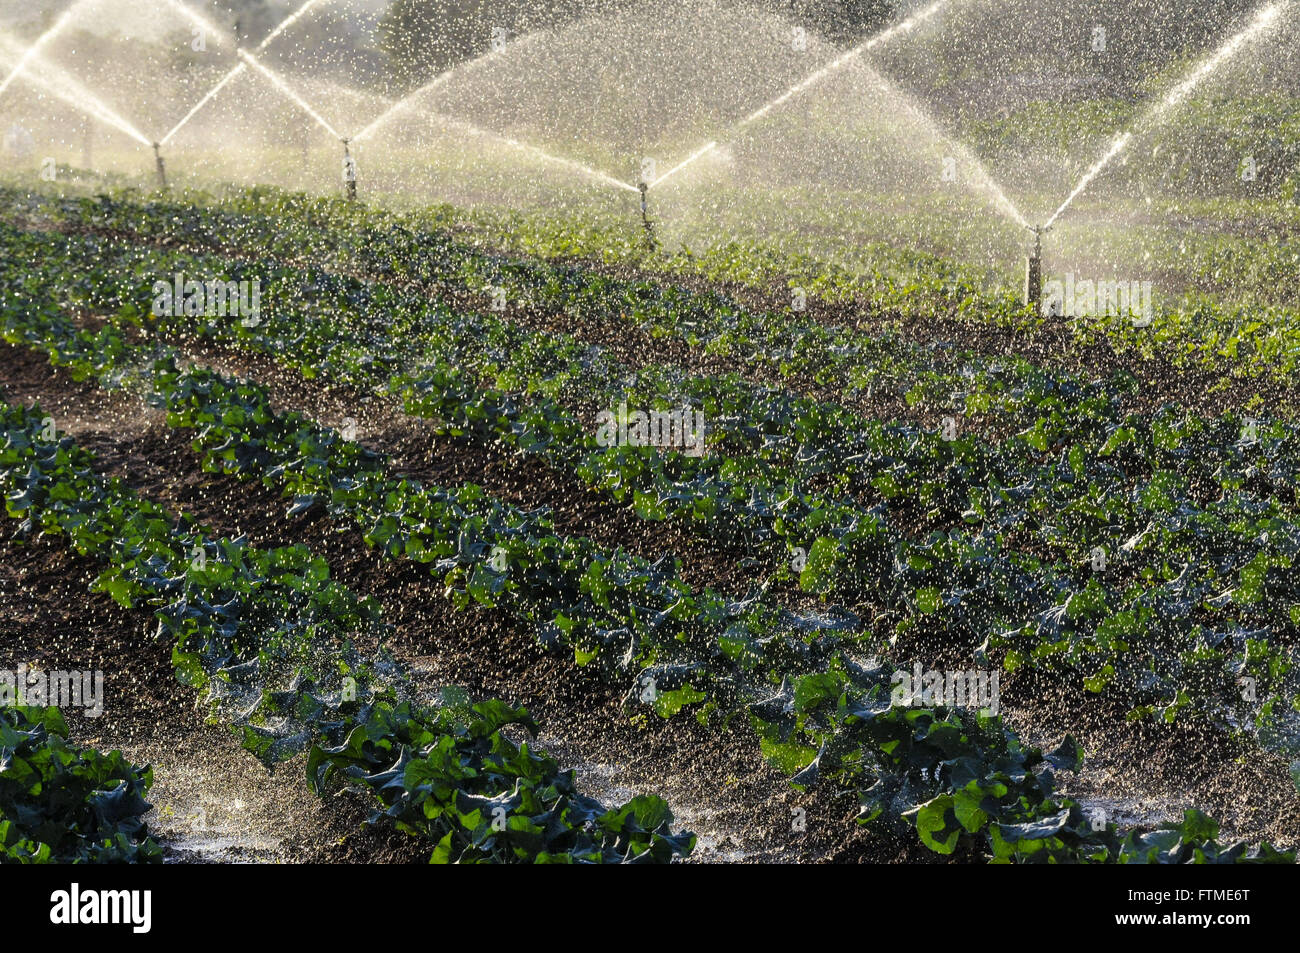 Plantation of broccoli being Irrigated - Stock Image